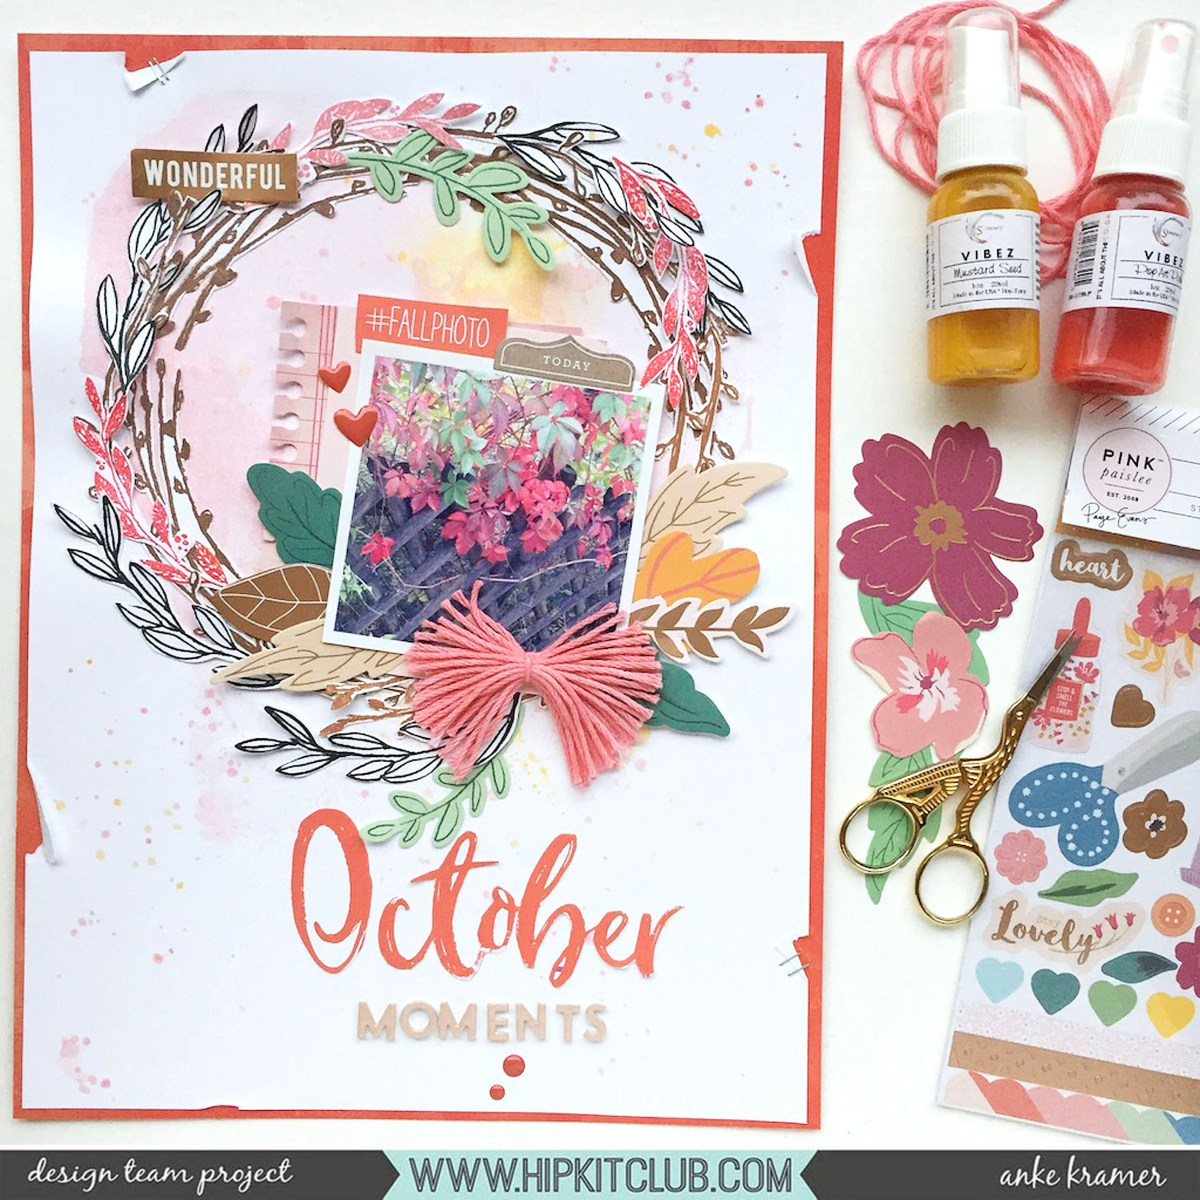 October Moments - Mixed Media Monday - Anke Kramer